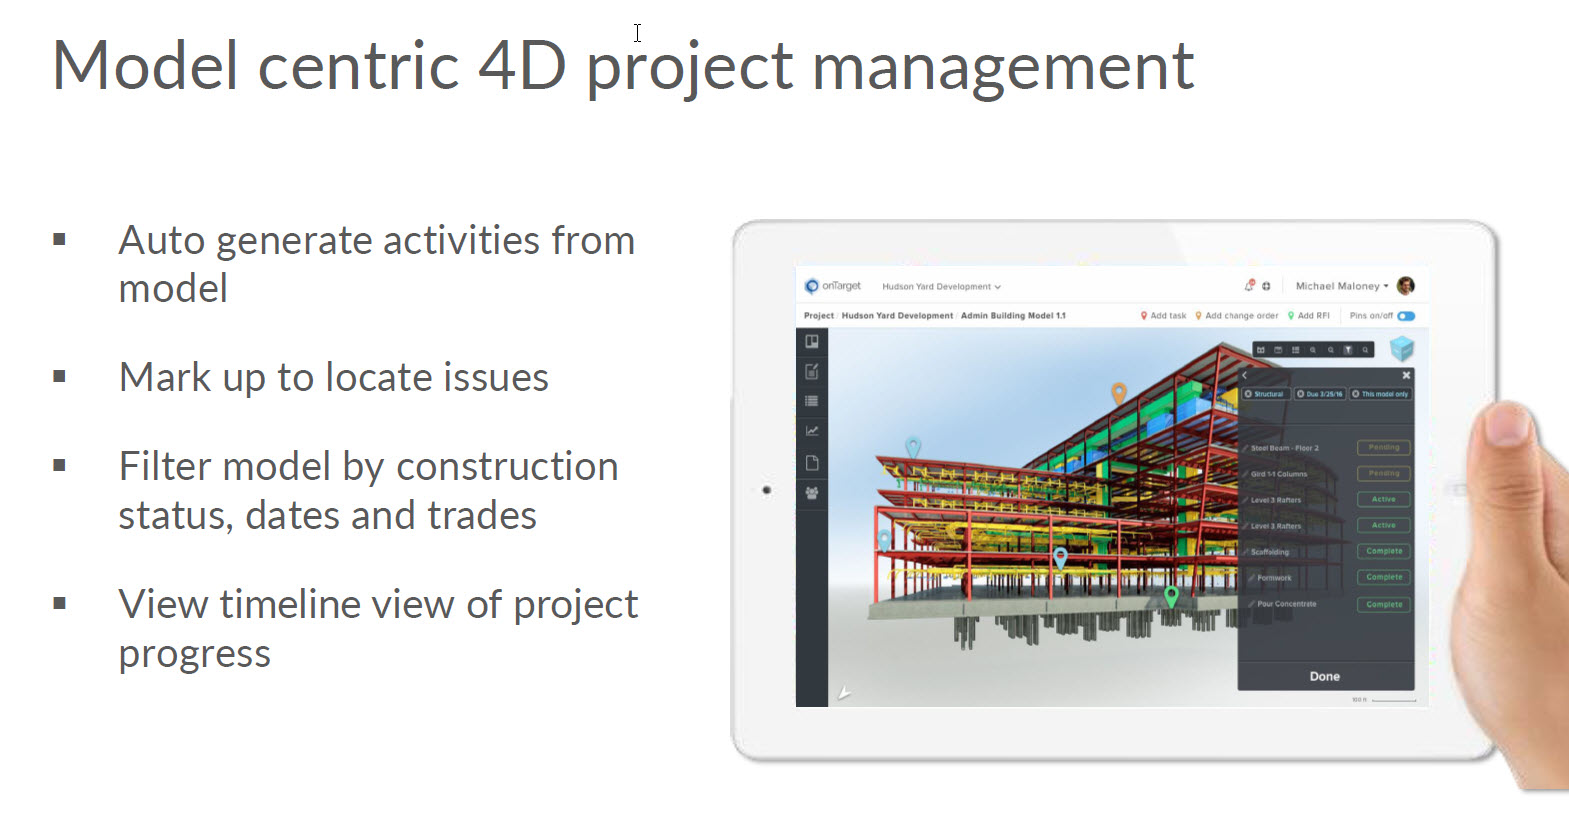 OnTarget uses Autodesk Forge to tackle construction in 4D